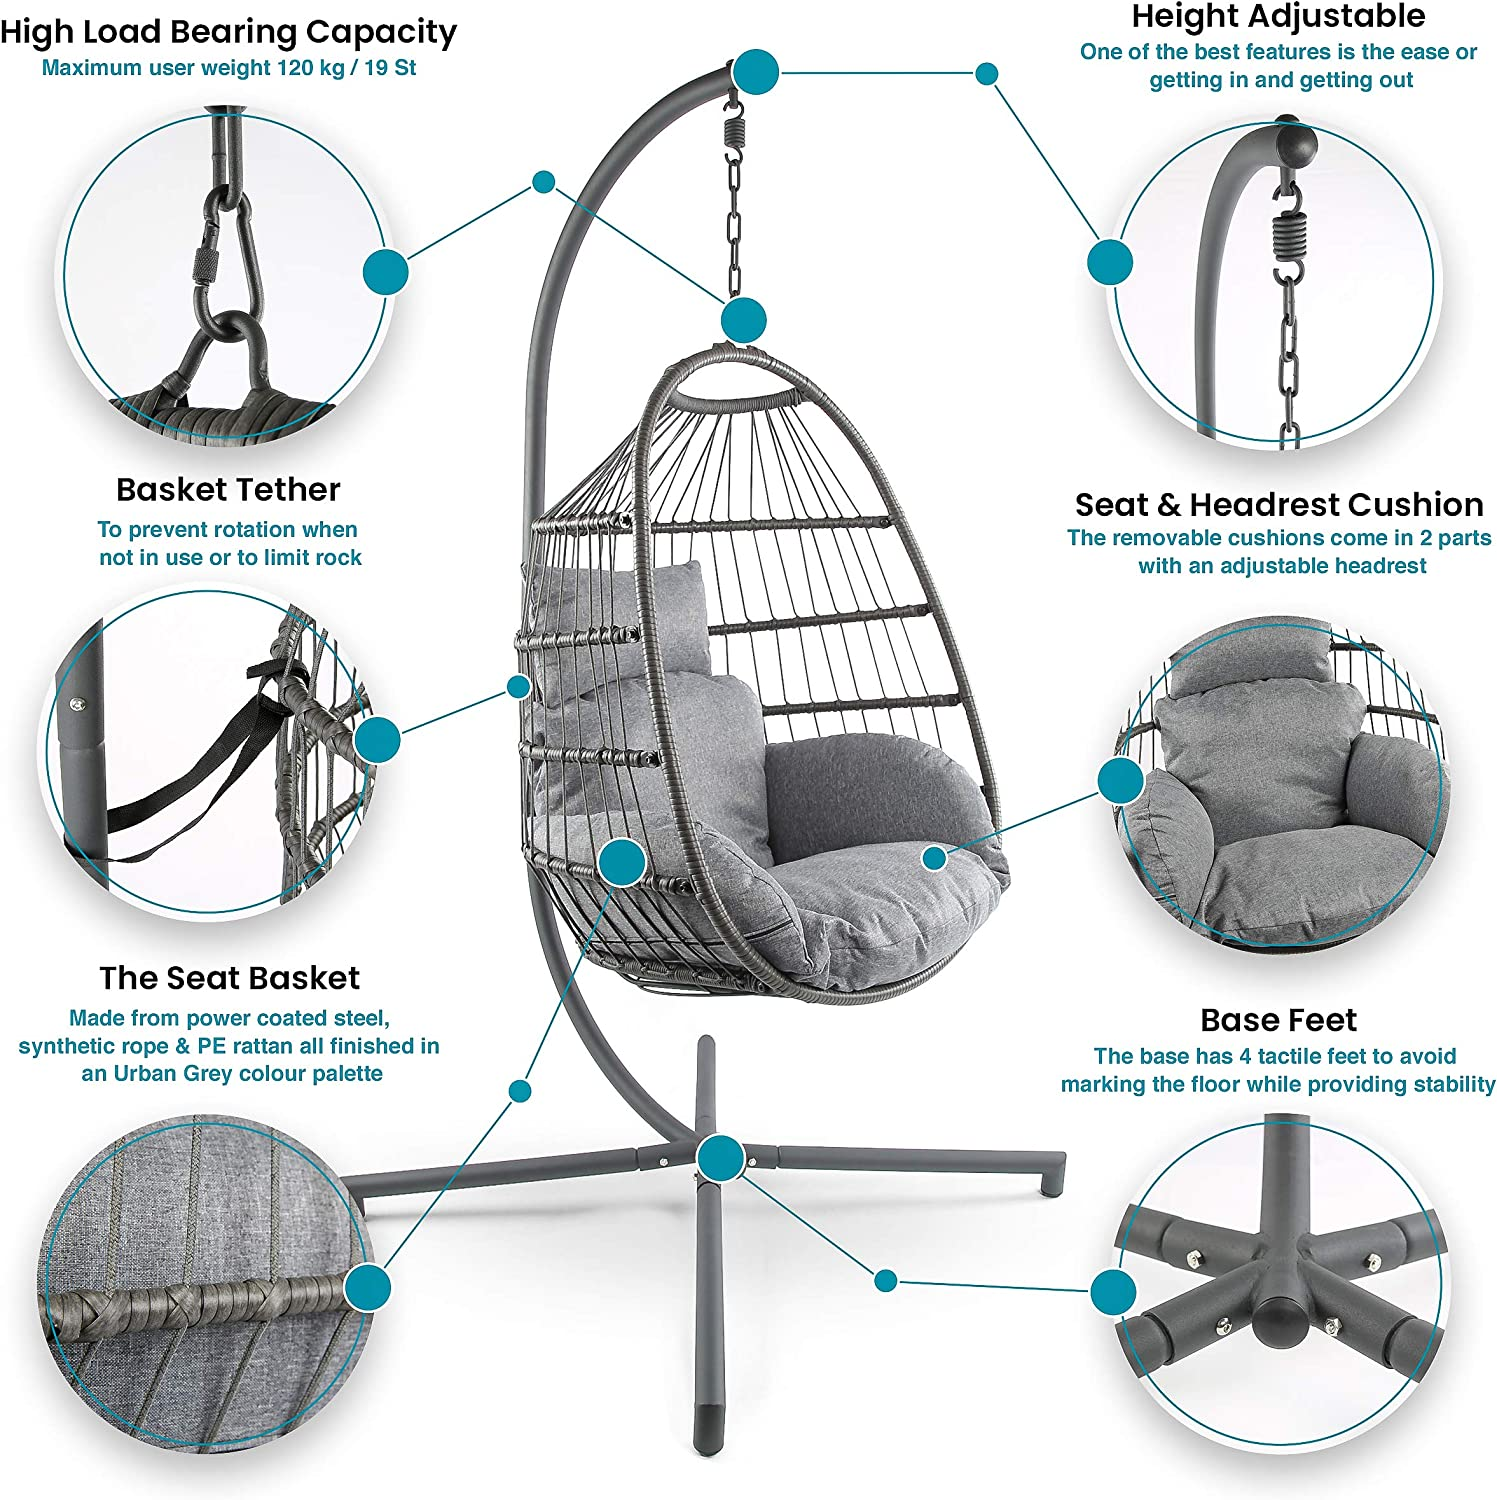 Divine Style Premium Collapsible Easy Storage Rattan Urban Grey Rope /& Steel Hanging Egg Chair Swing with Stand for Garden or Indoor